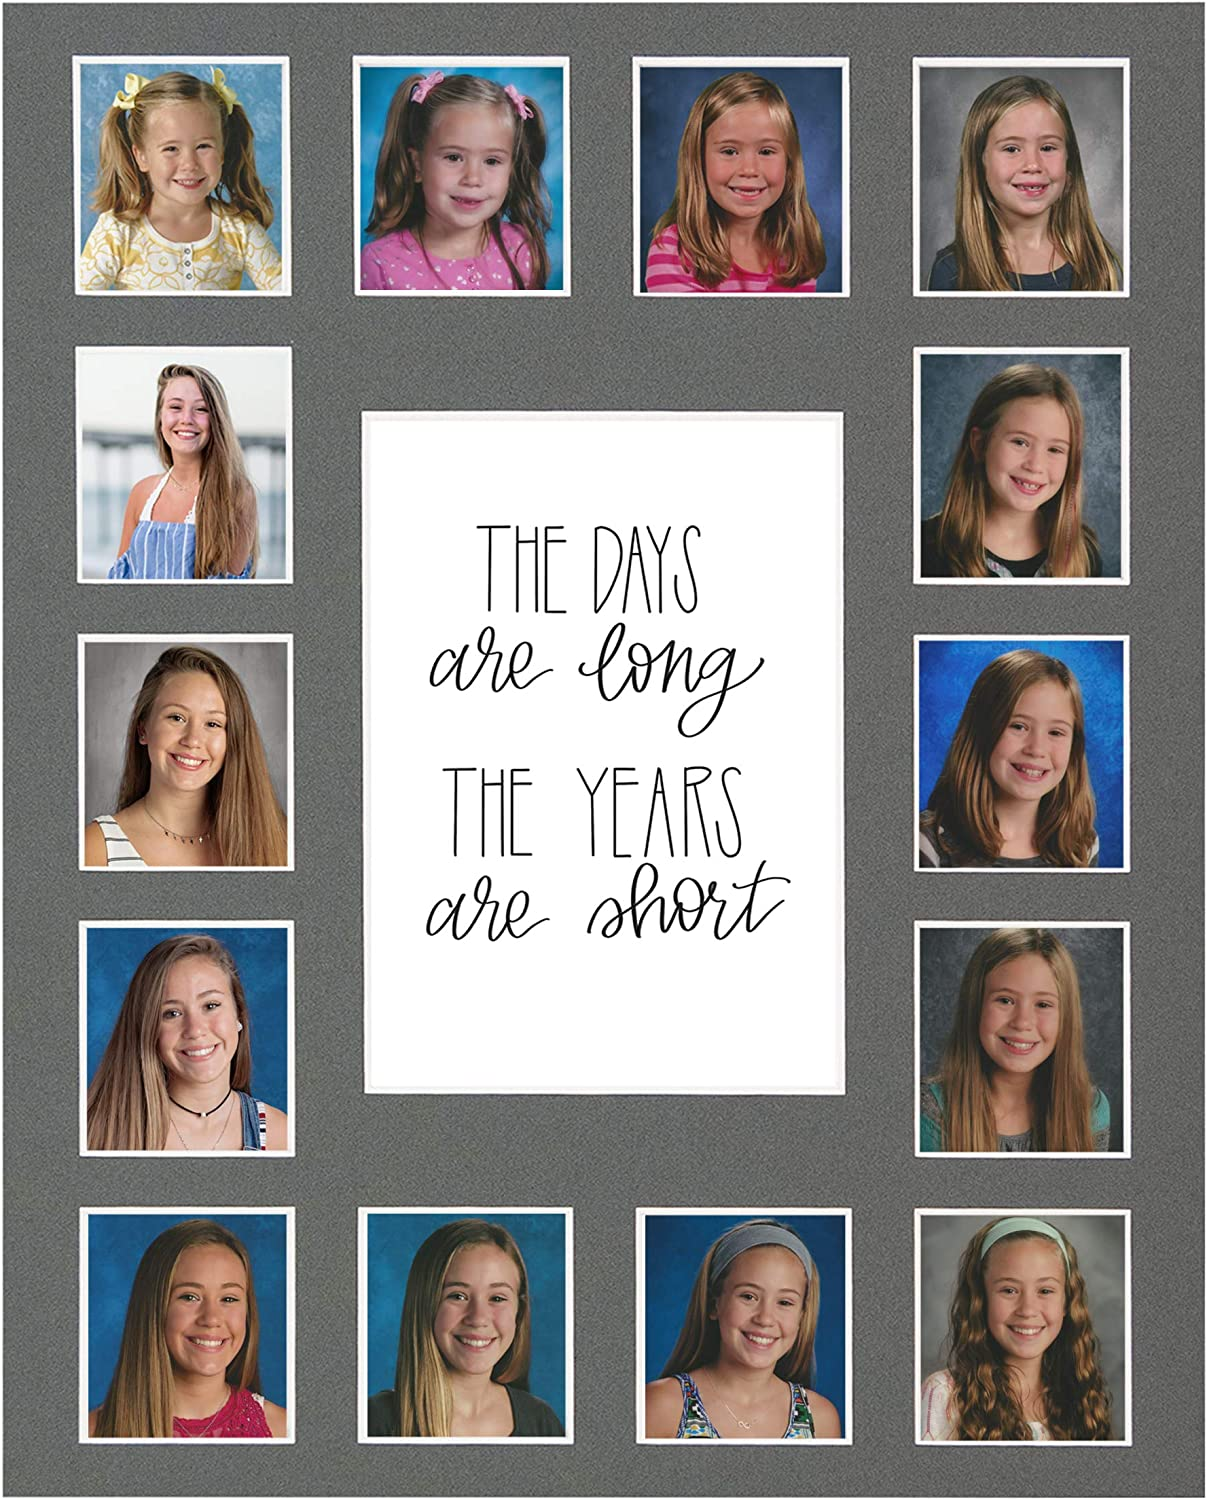 The Days are Long Picture Mat 13 Photos, K-12th, White Kindergarten to 12th Grade Graduation All Things For Mom School Days Picture Mat with Multiple Openings School Years Photo Collage